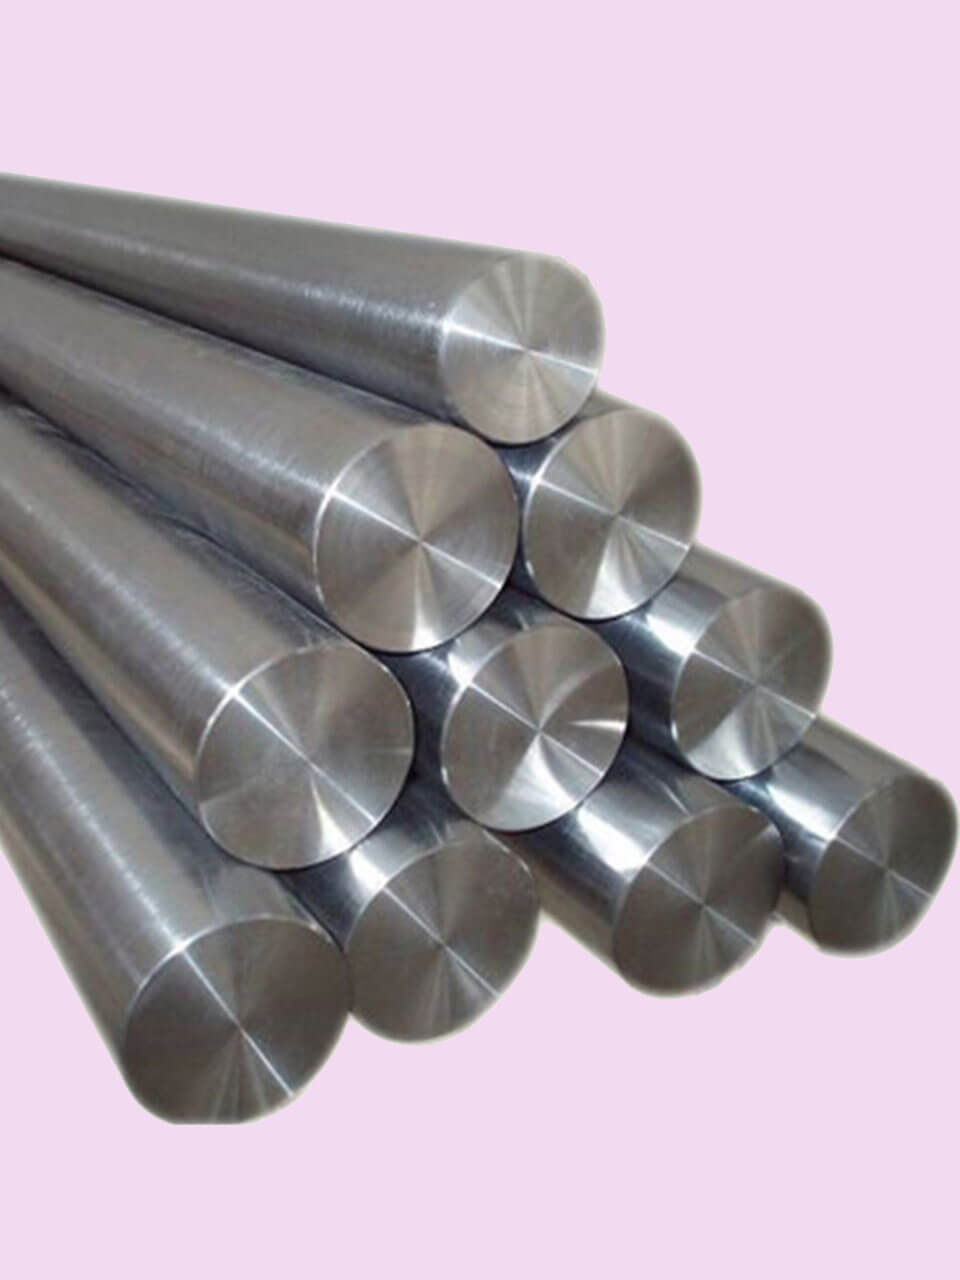 Super Duplex Steel s32750 Round Bars